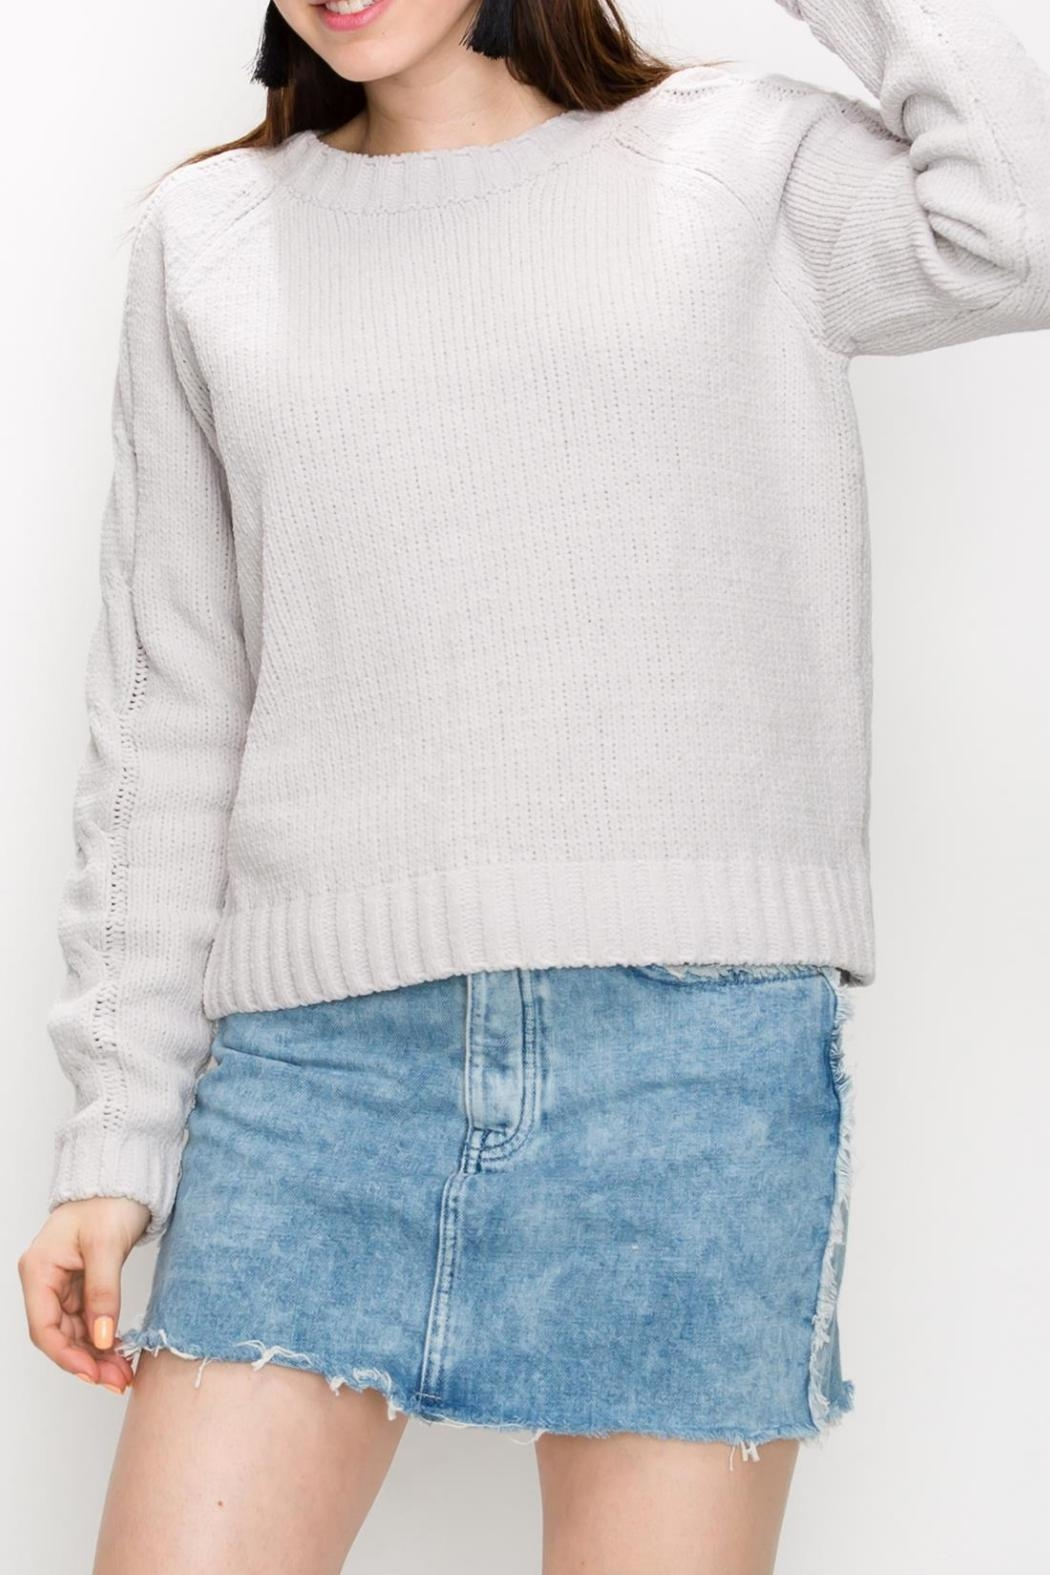 HYVE Cloud Cable-Knit Sweater - Main Image